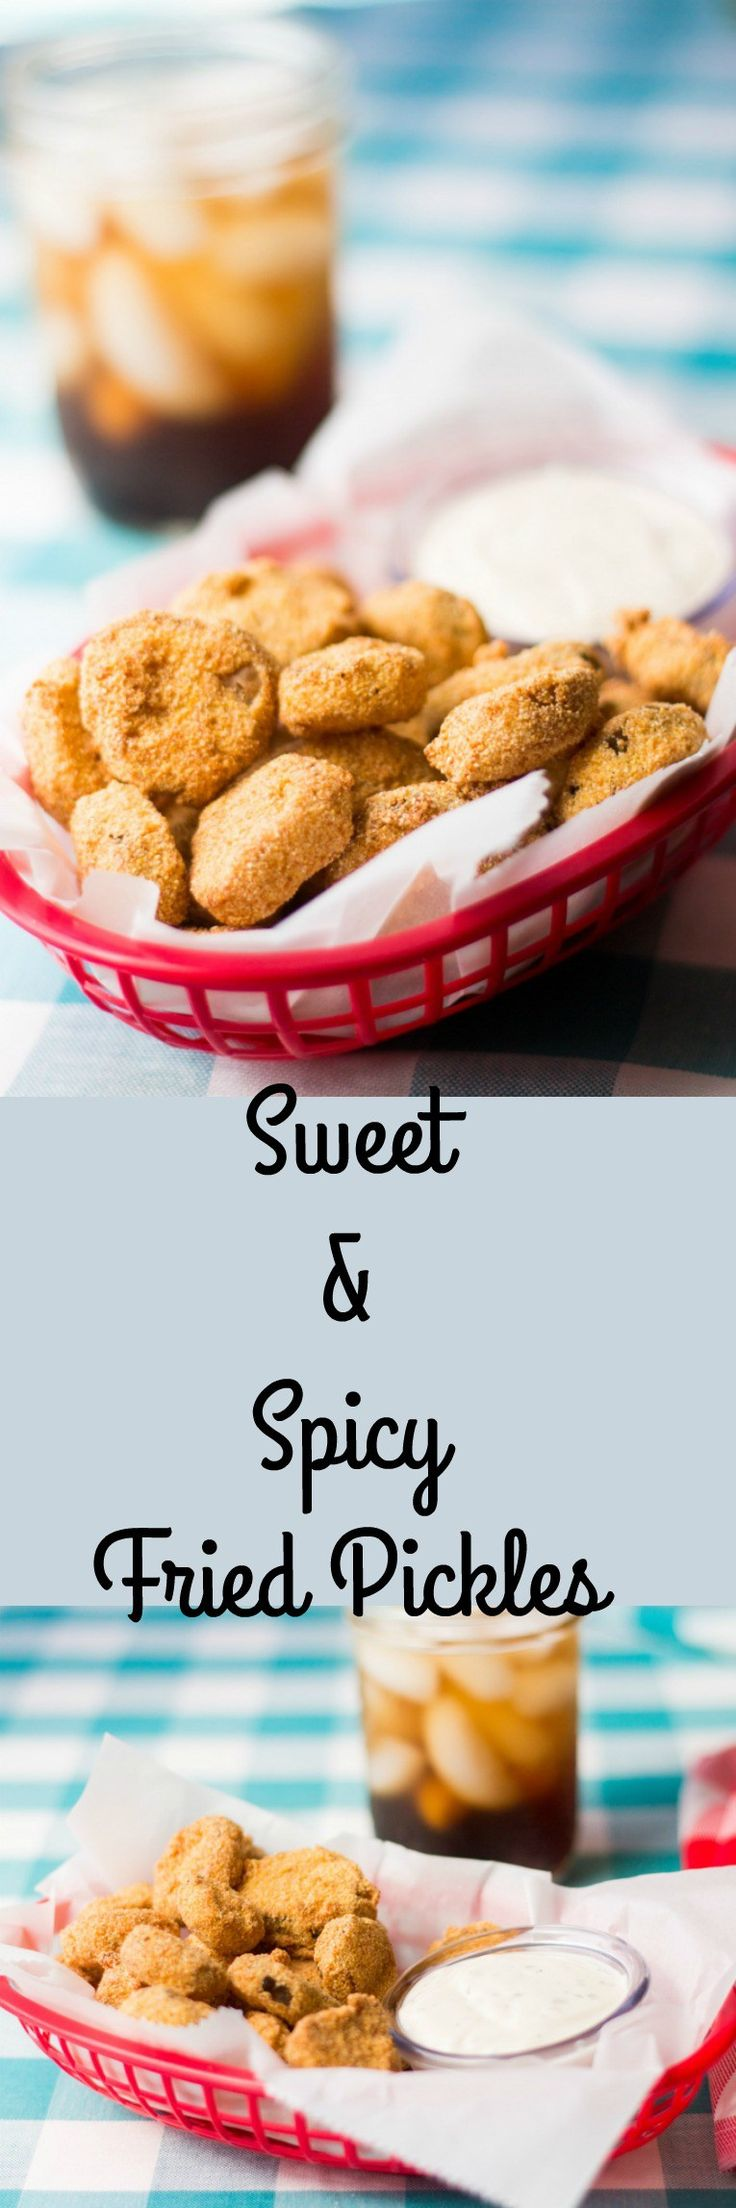 Sweet and spicy pickles or the perfect combination of pickles and breading. Don't like the idea of sweet, change up your pickles.